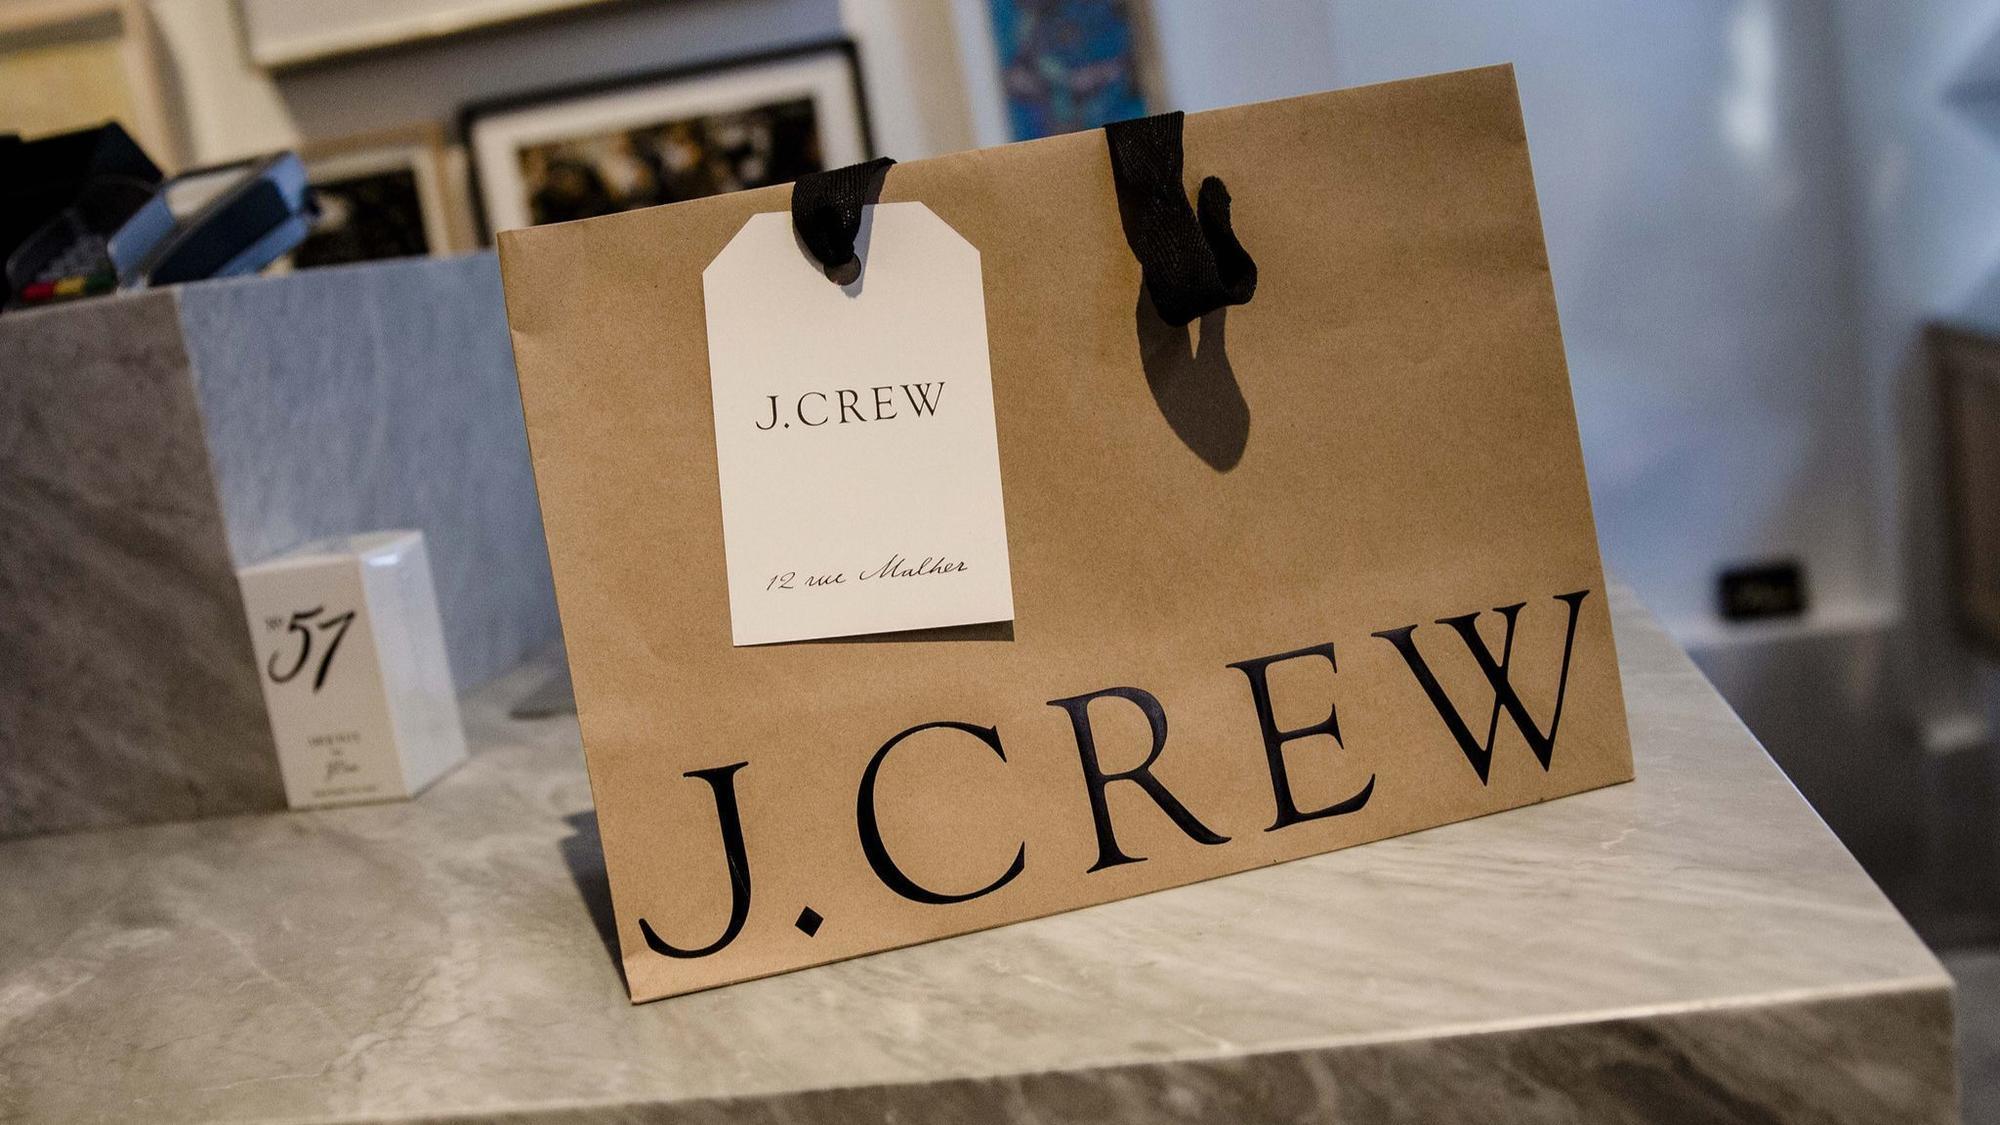 c39d5a2ad5 J. Crew to unveil brand for younger women in recovery plan - Chicago Tribune